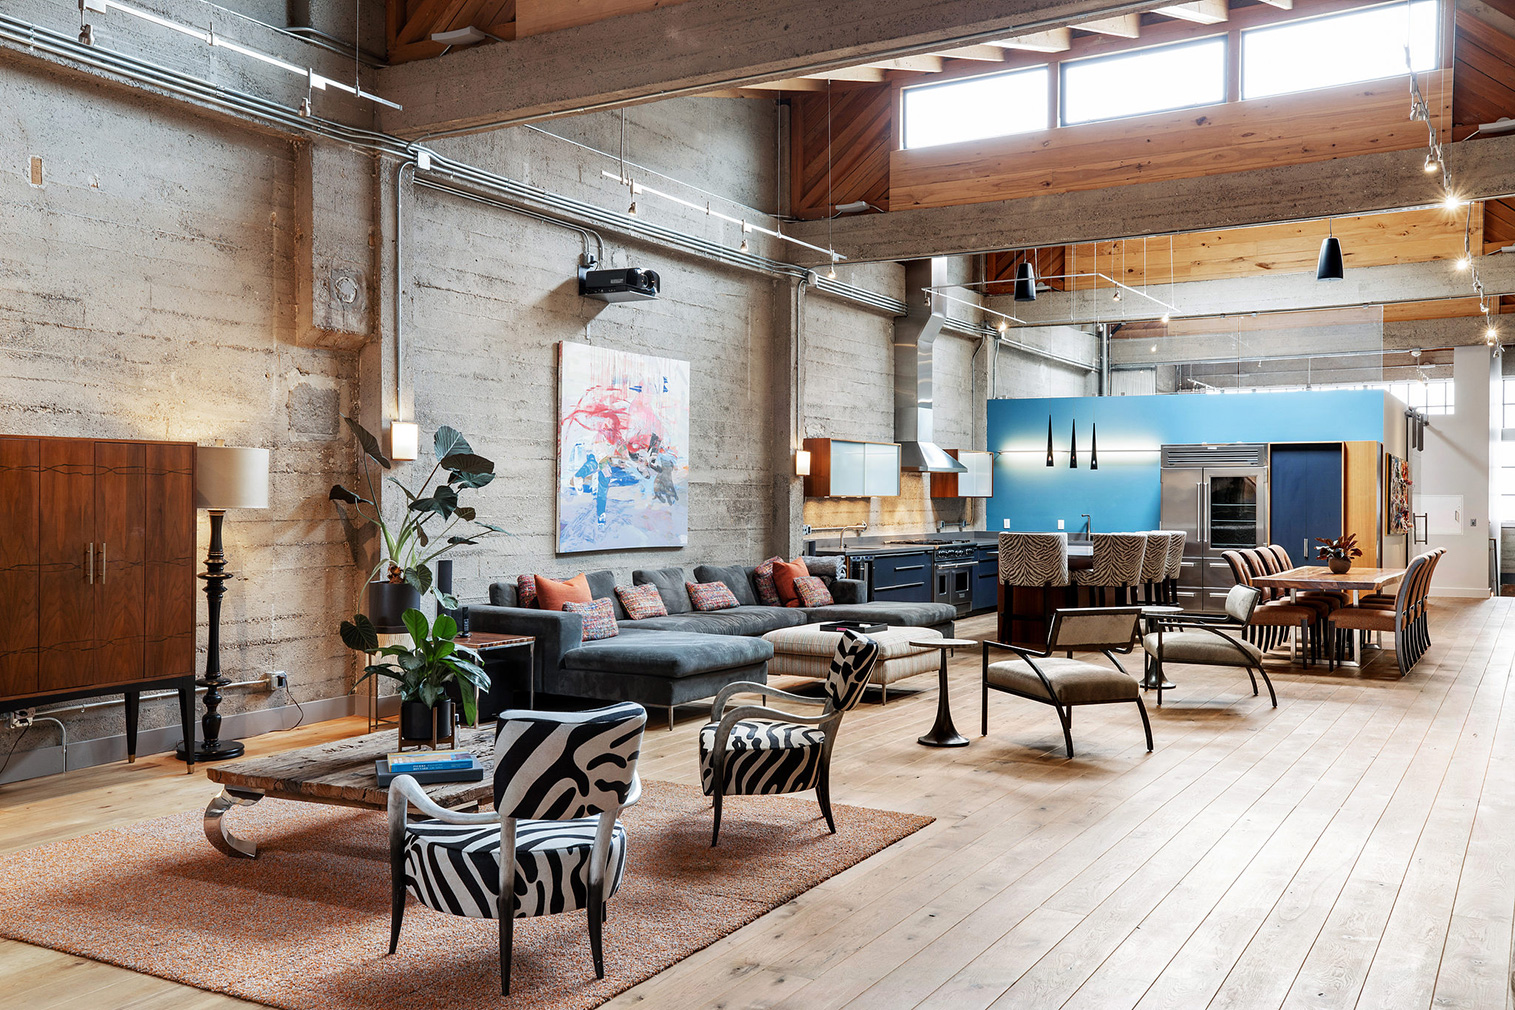 Stacked shipping containers sit inside this sprawling warehouse loft in San Francisco's Fillmore District, juxtaposing industrial brick bones with rugged steel.